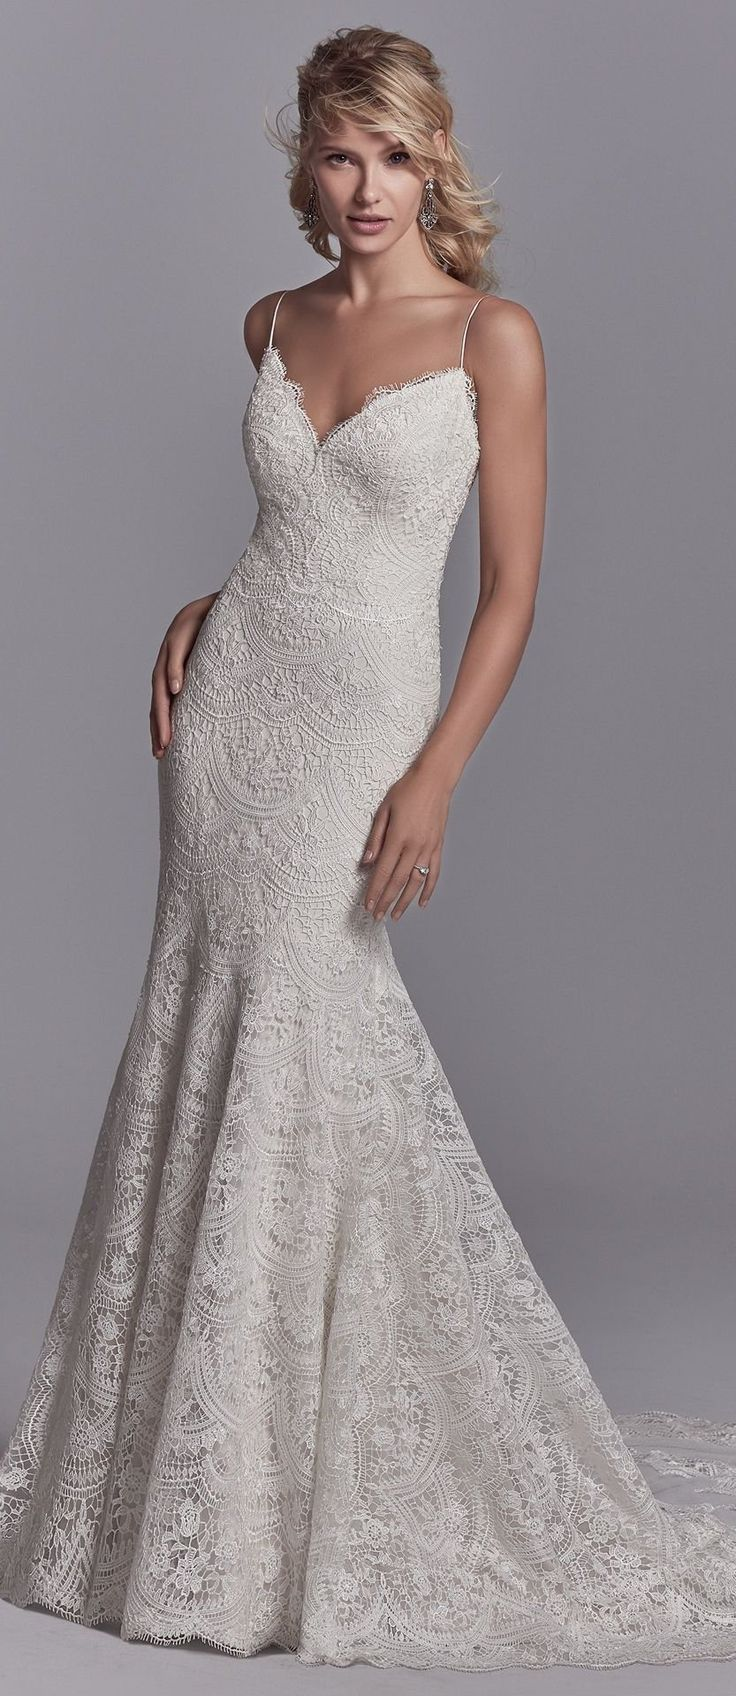 Maxwell Rose By Sottero And Midgley Wedding Dresses